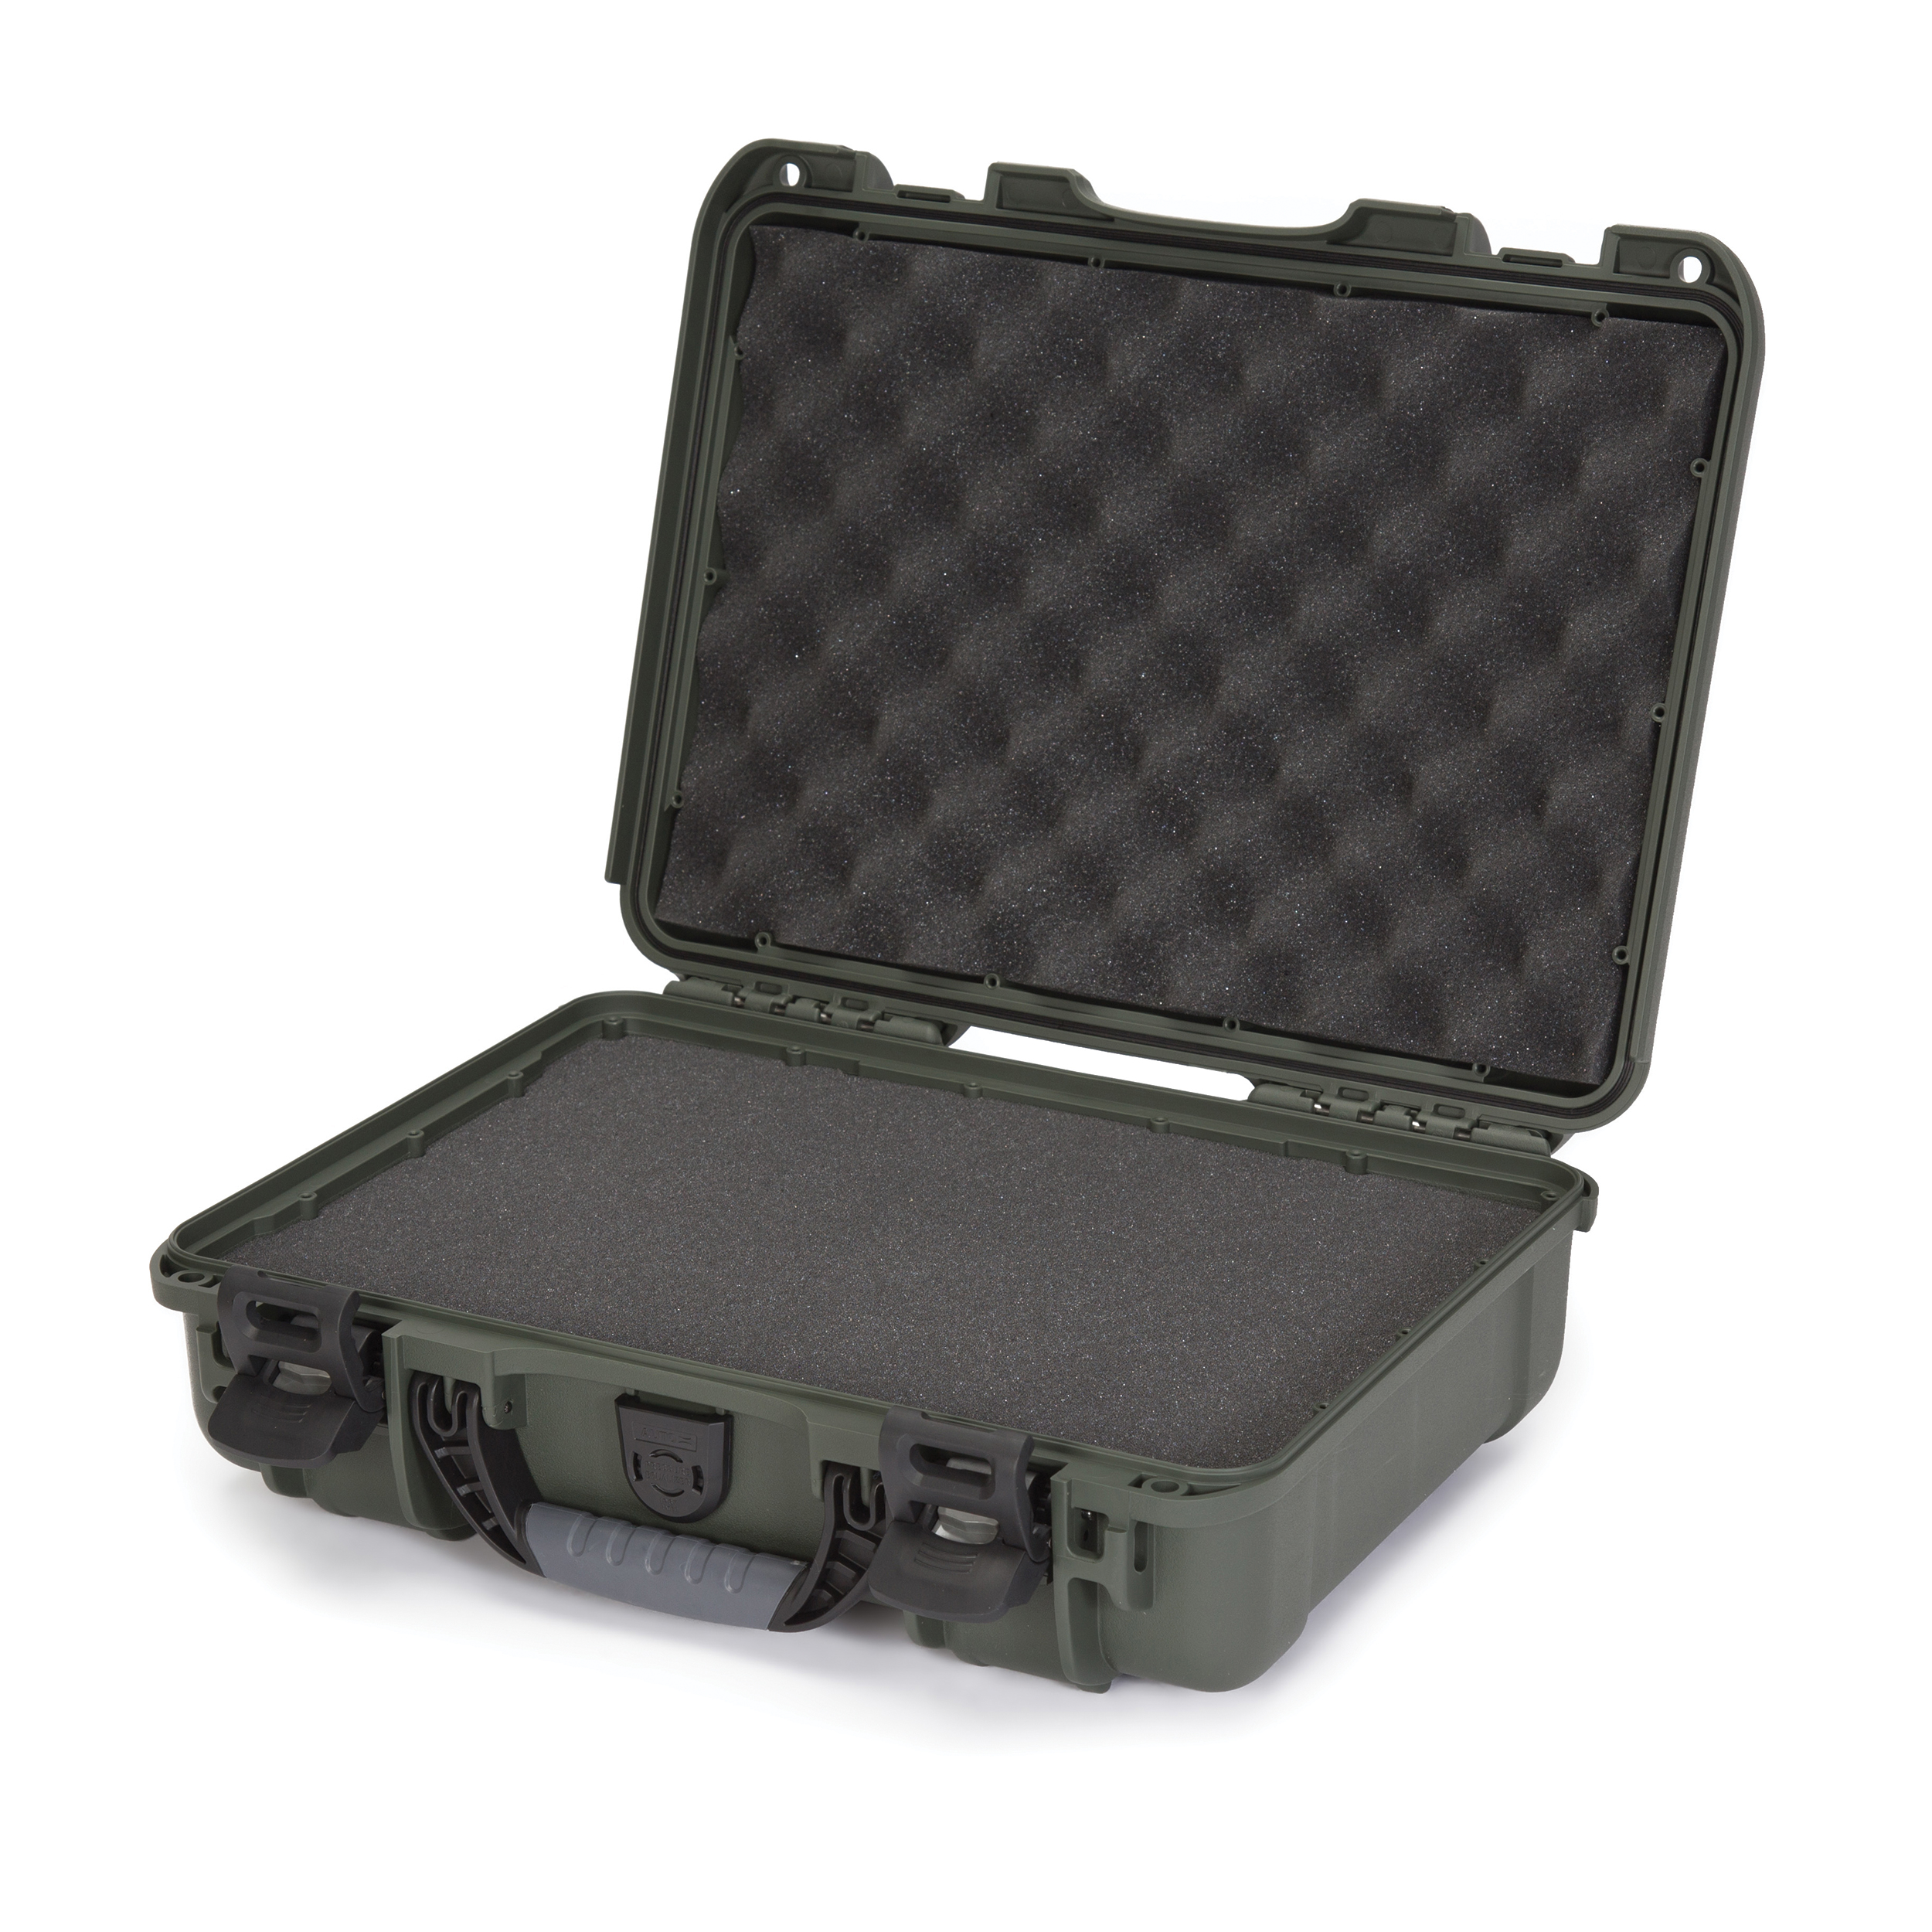 Nanuk 910 Professional Gun Case, Military Approved, Waterproof and Shockproof - Olive